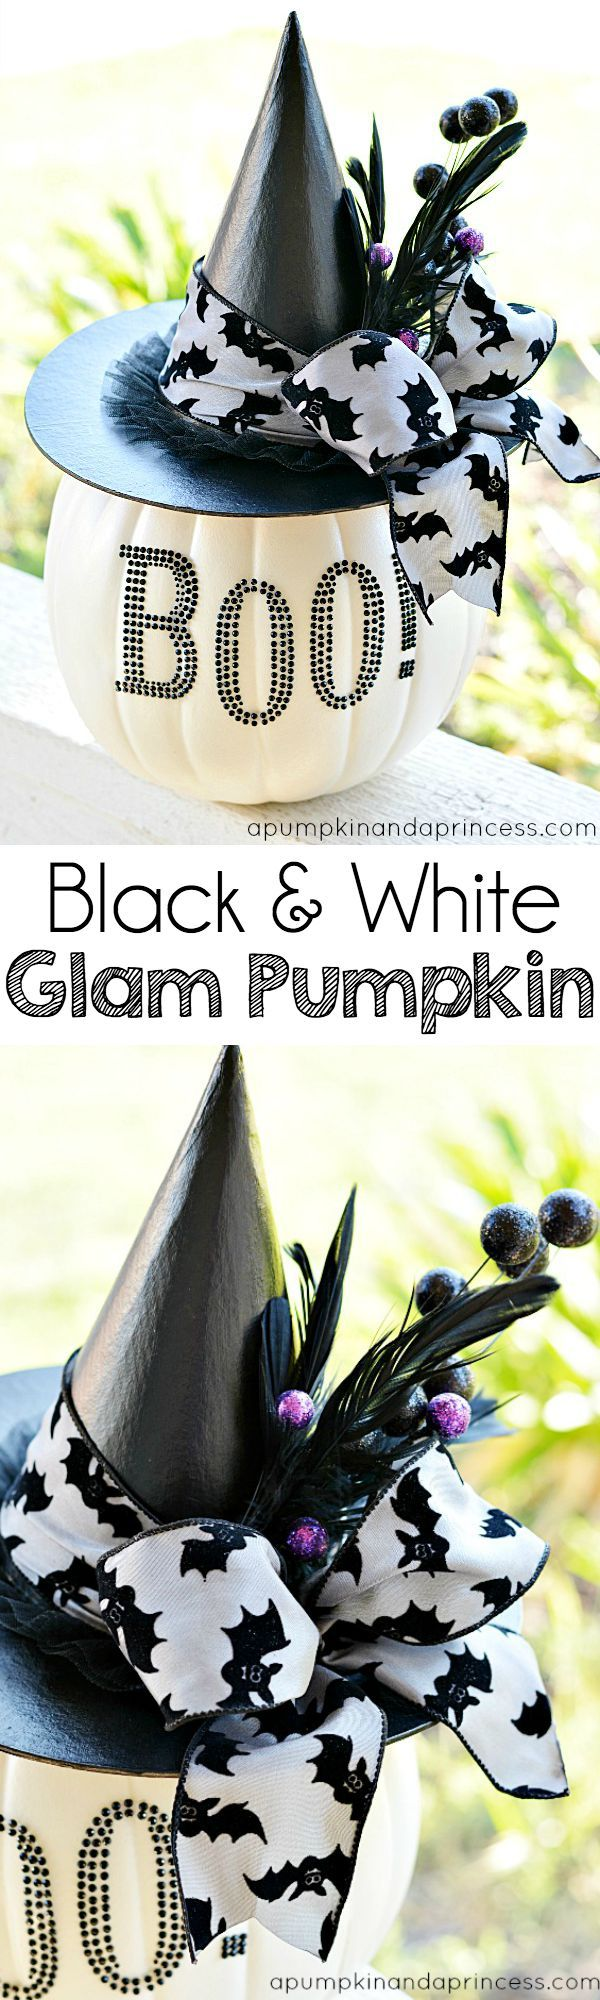 480 best Fall decorations images on Pinterest Halloween ideas - black and white halloween decorations